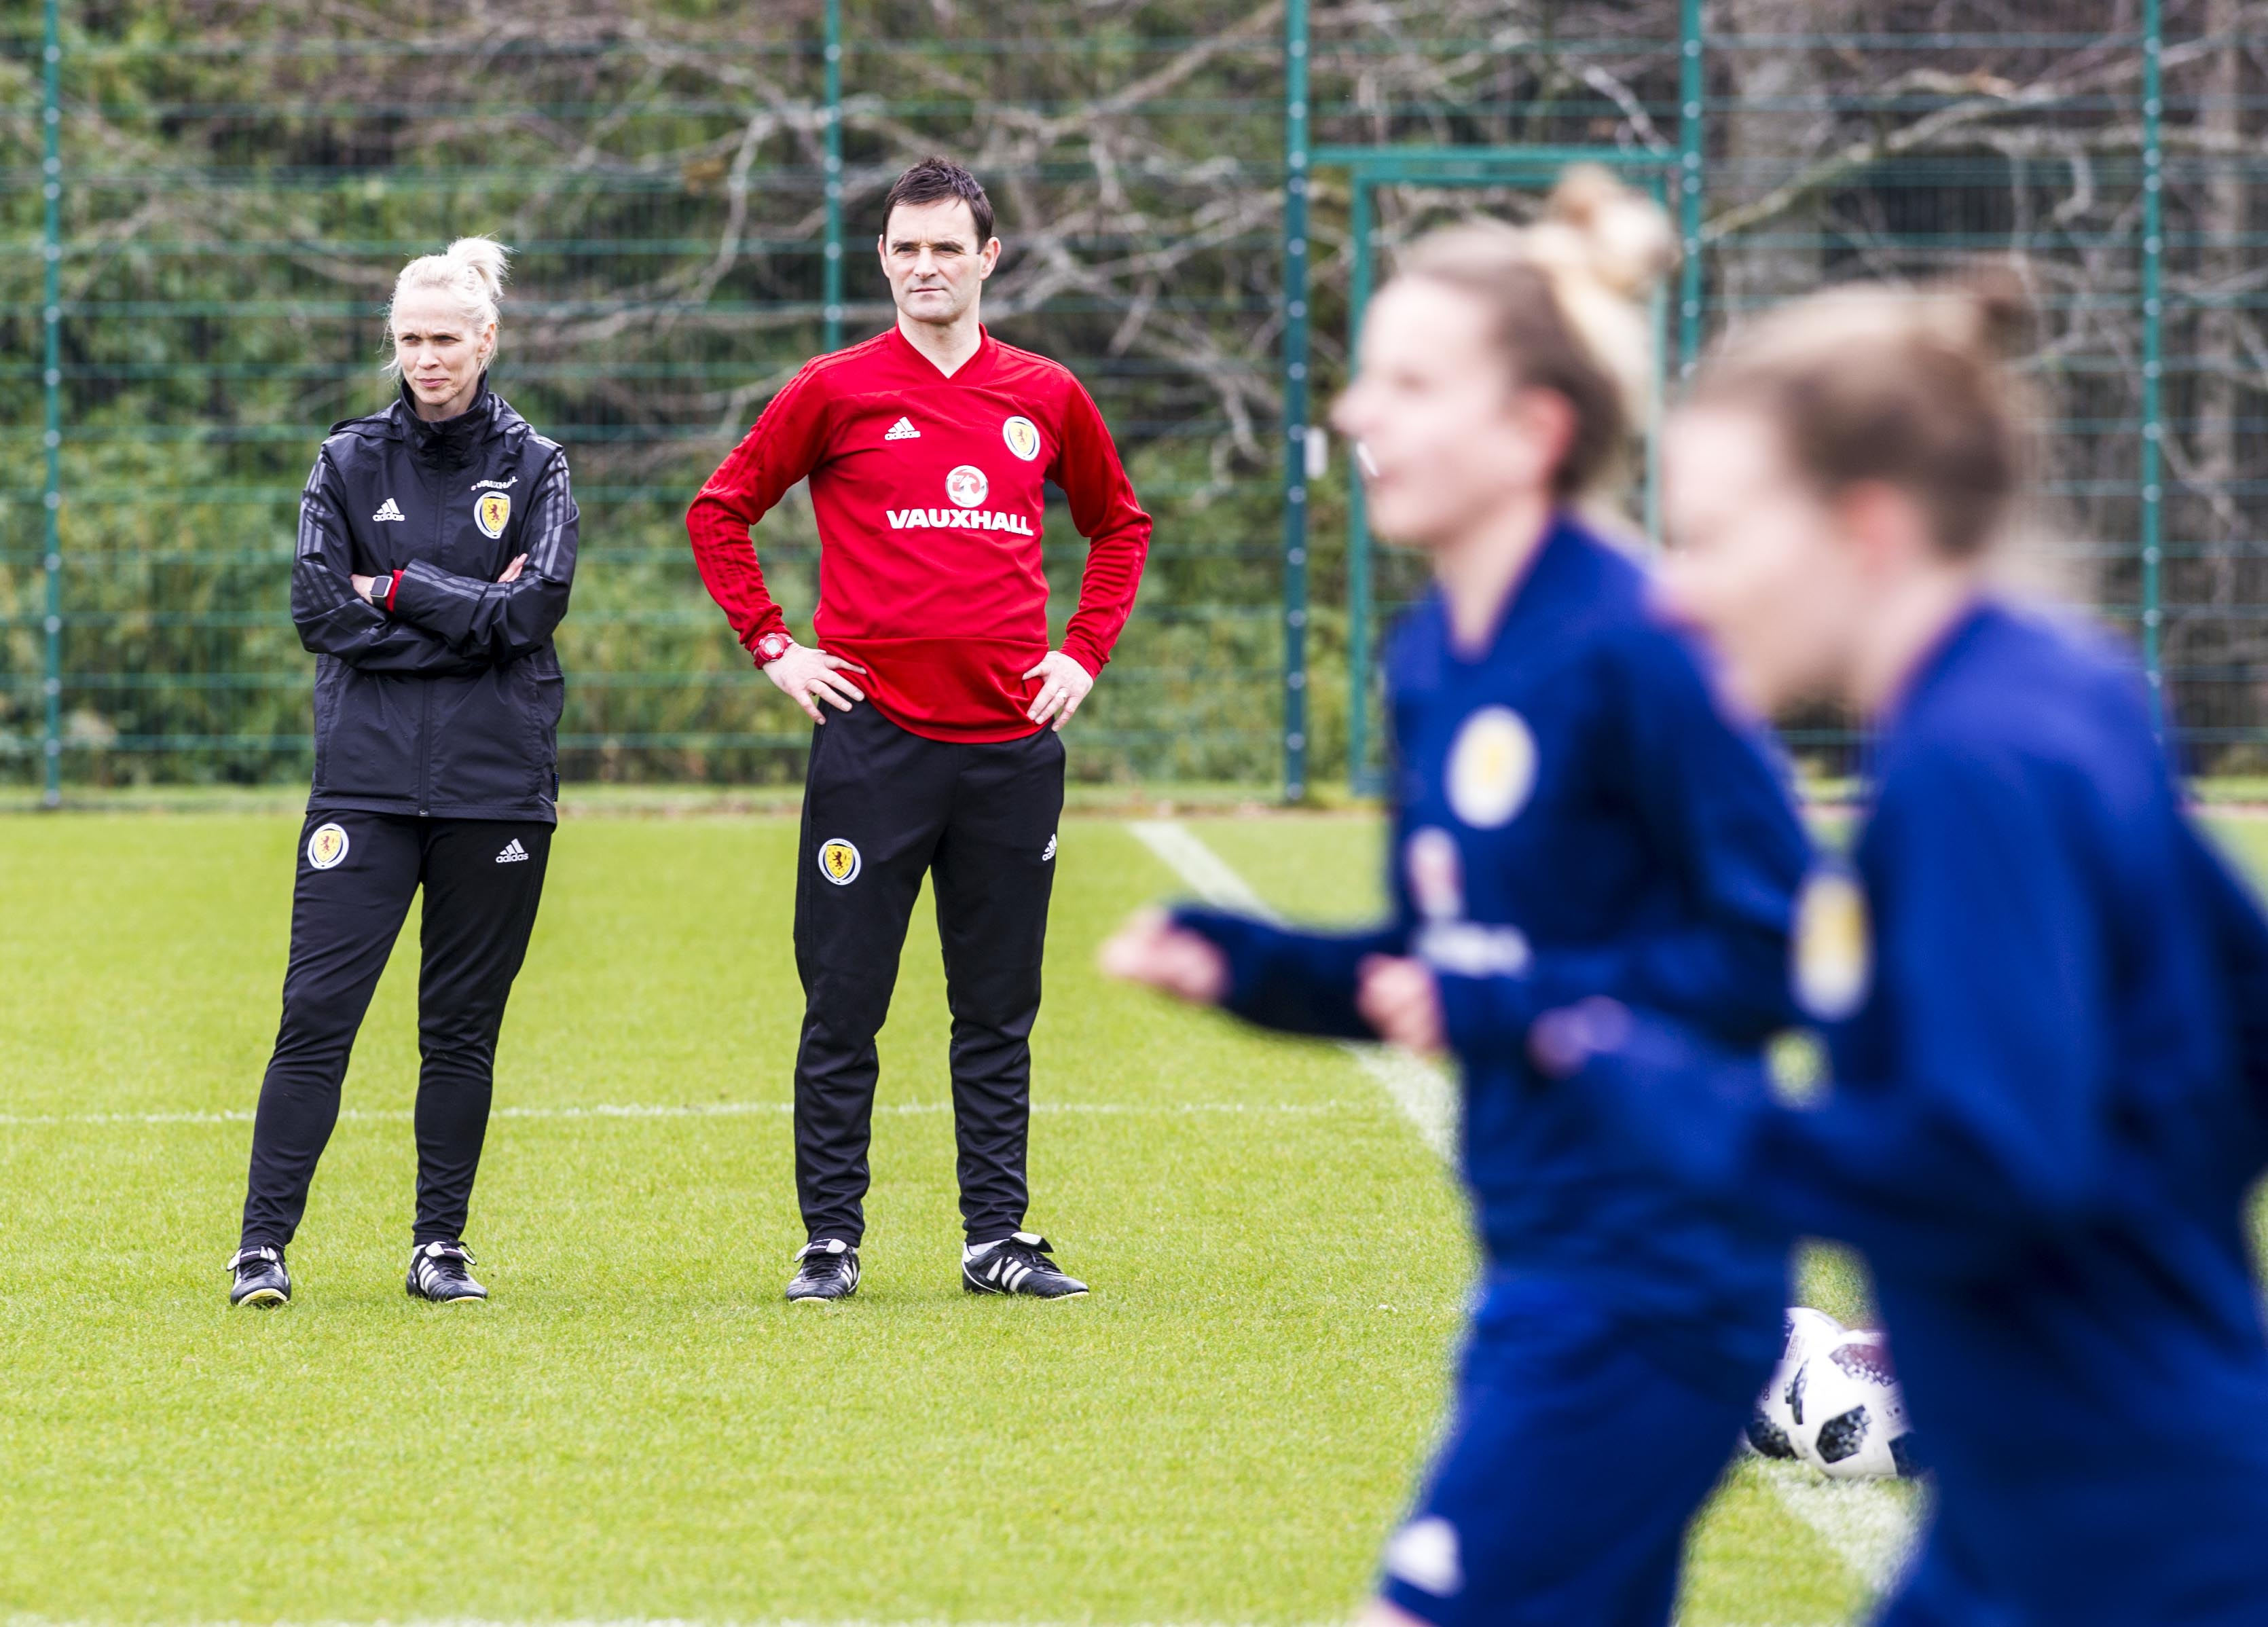 SFA Focus On Developing Women's Football